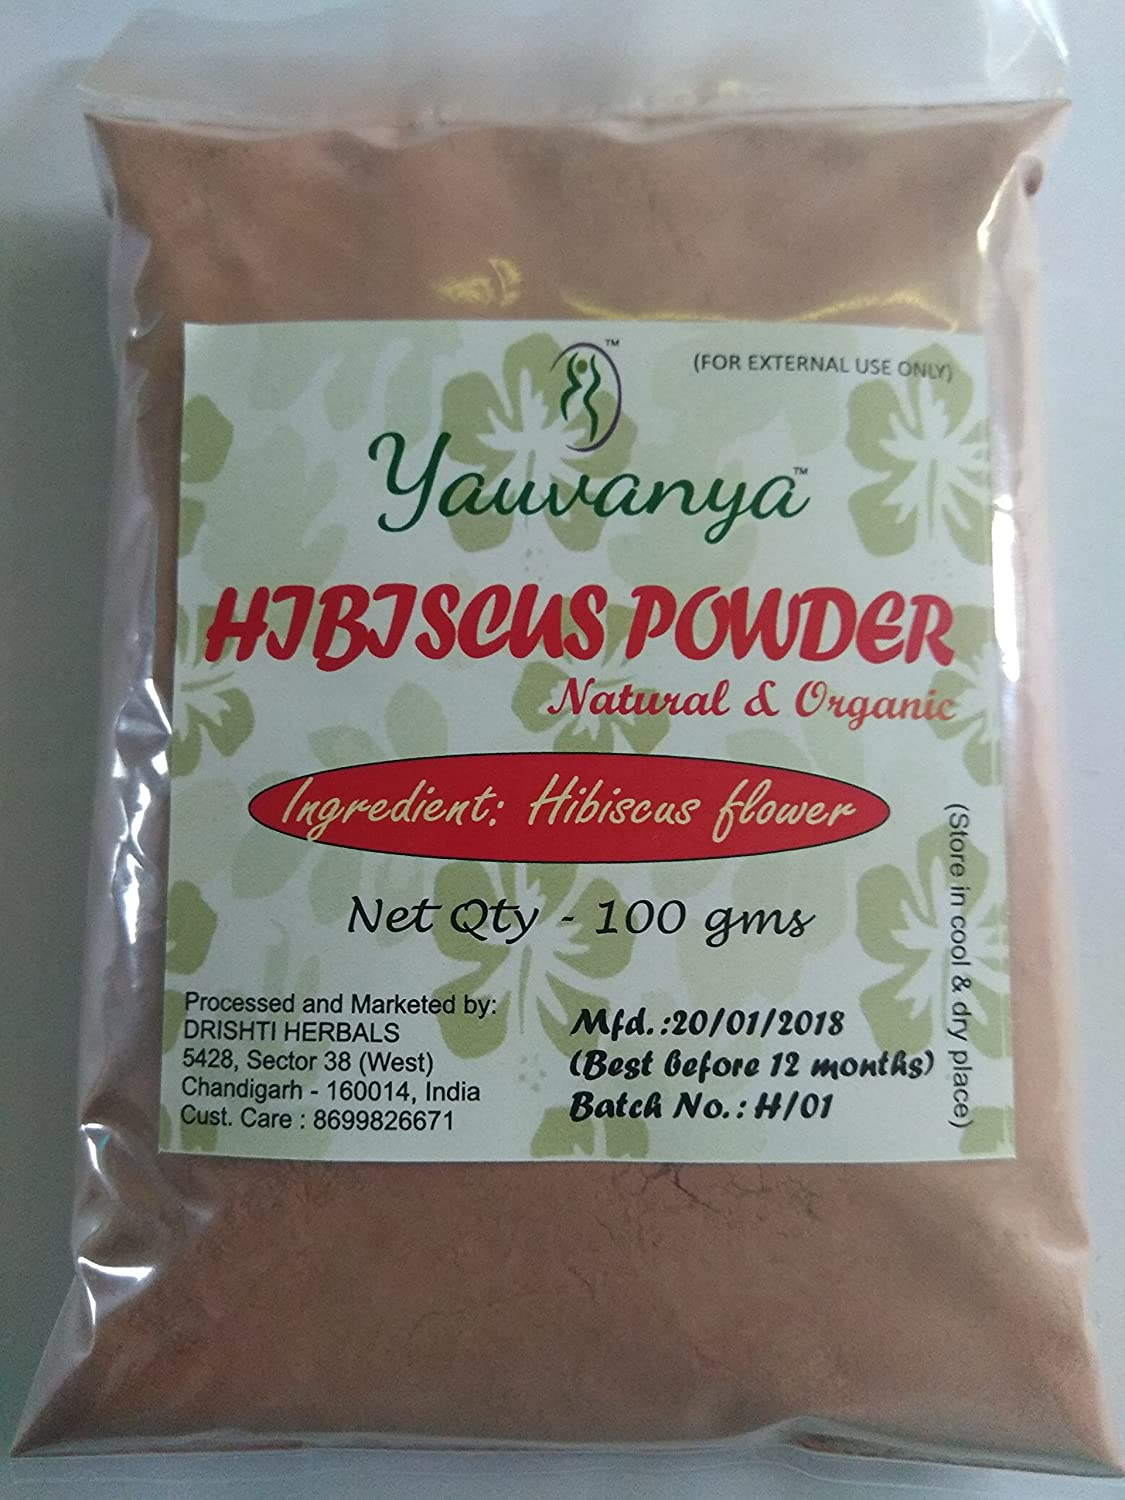 Yauvanya Pure Hibiscus Powder for Hair and Skin- 100 Gms Drishti Herbals